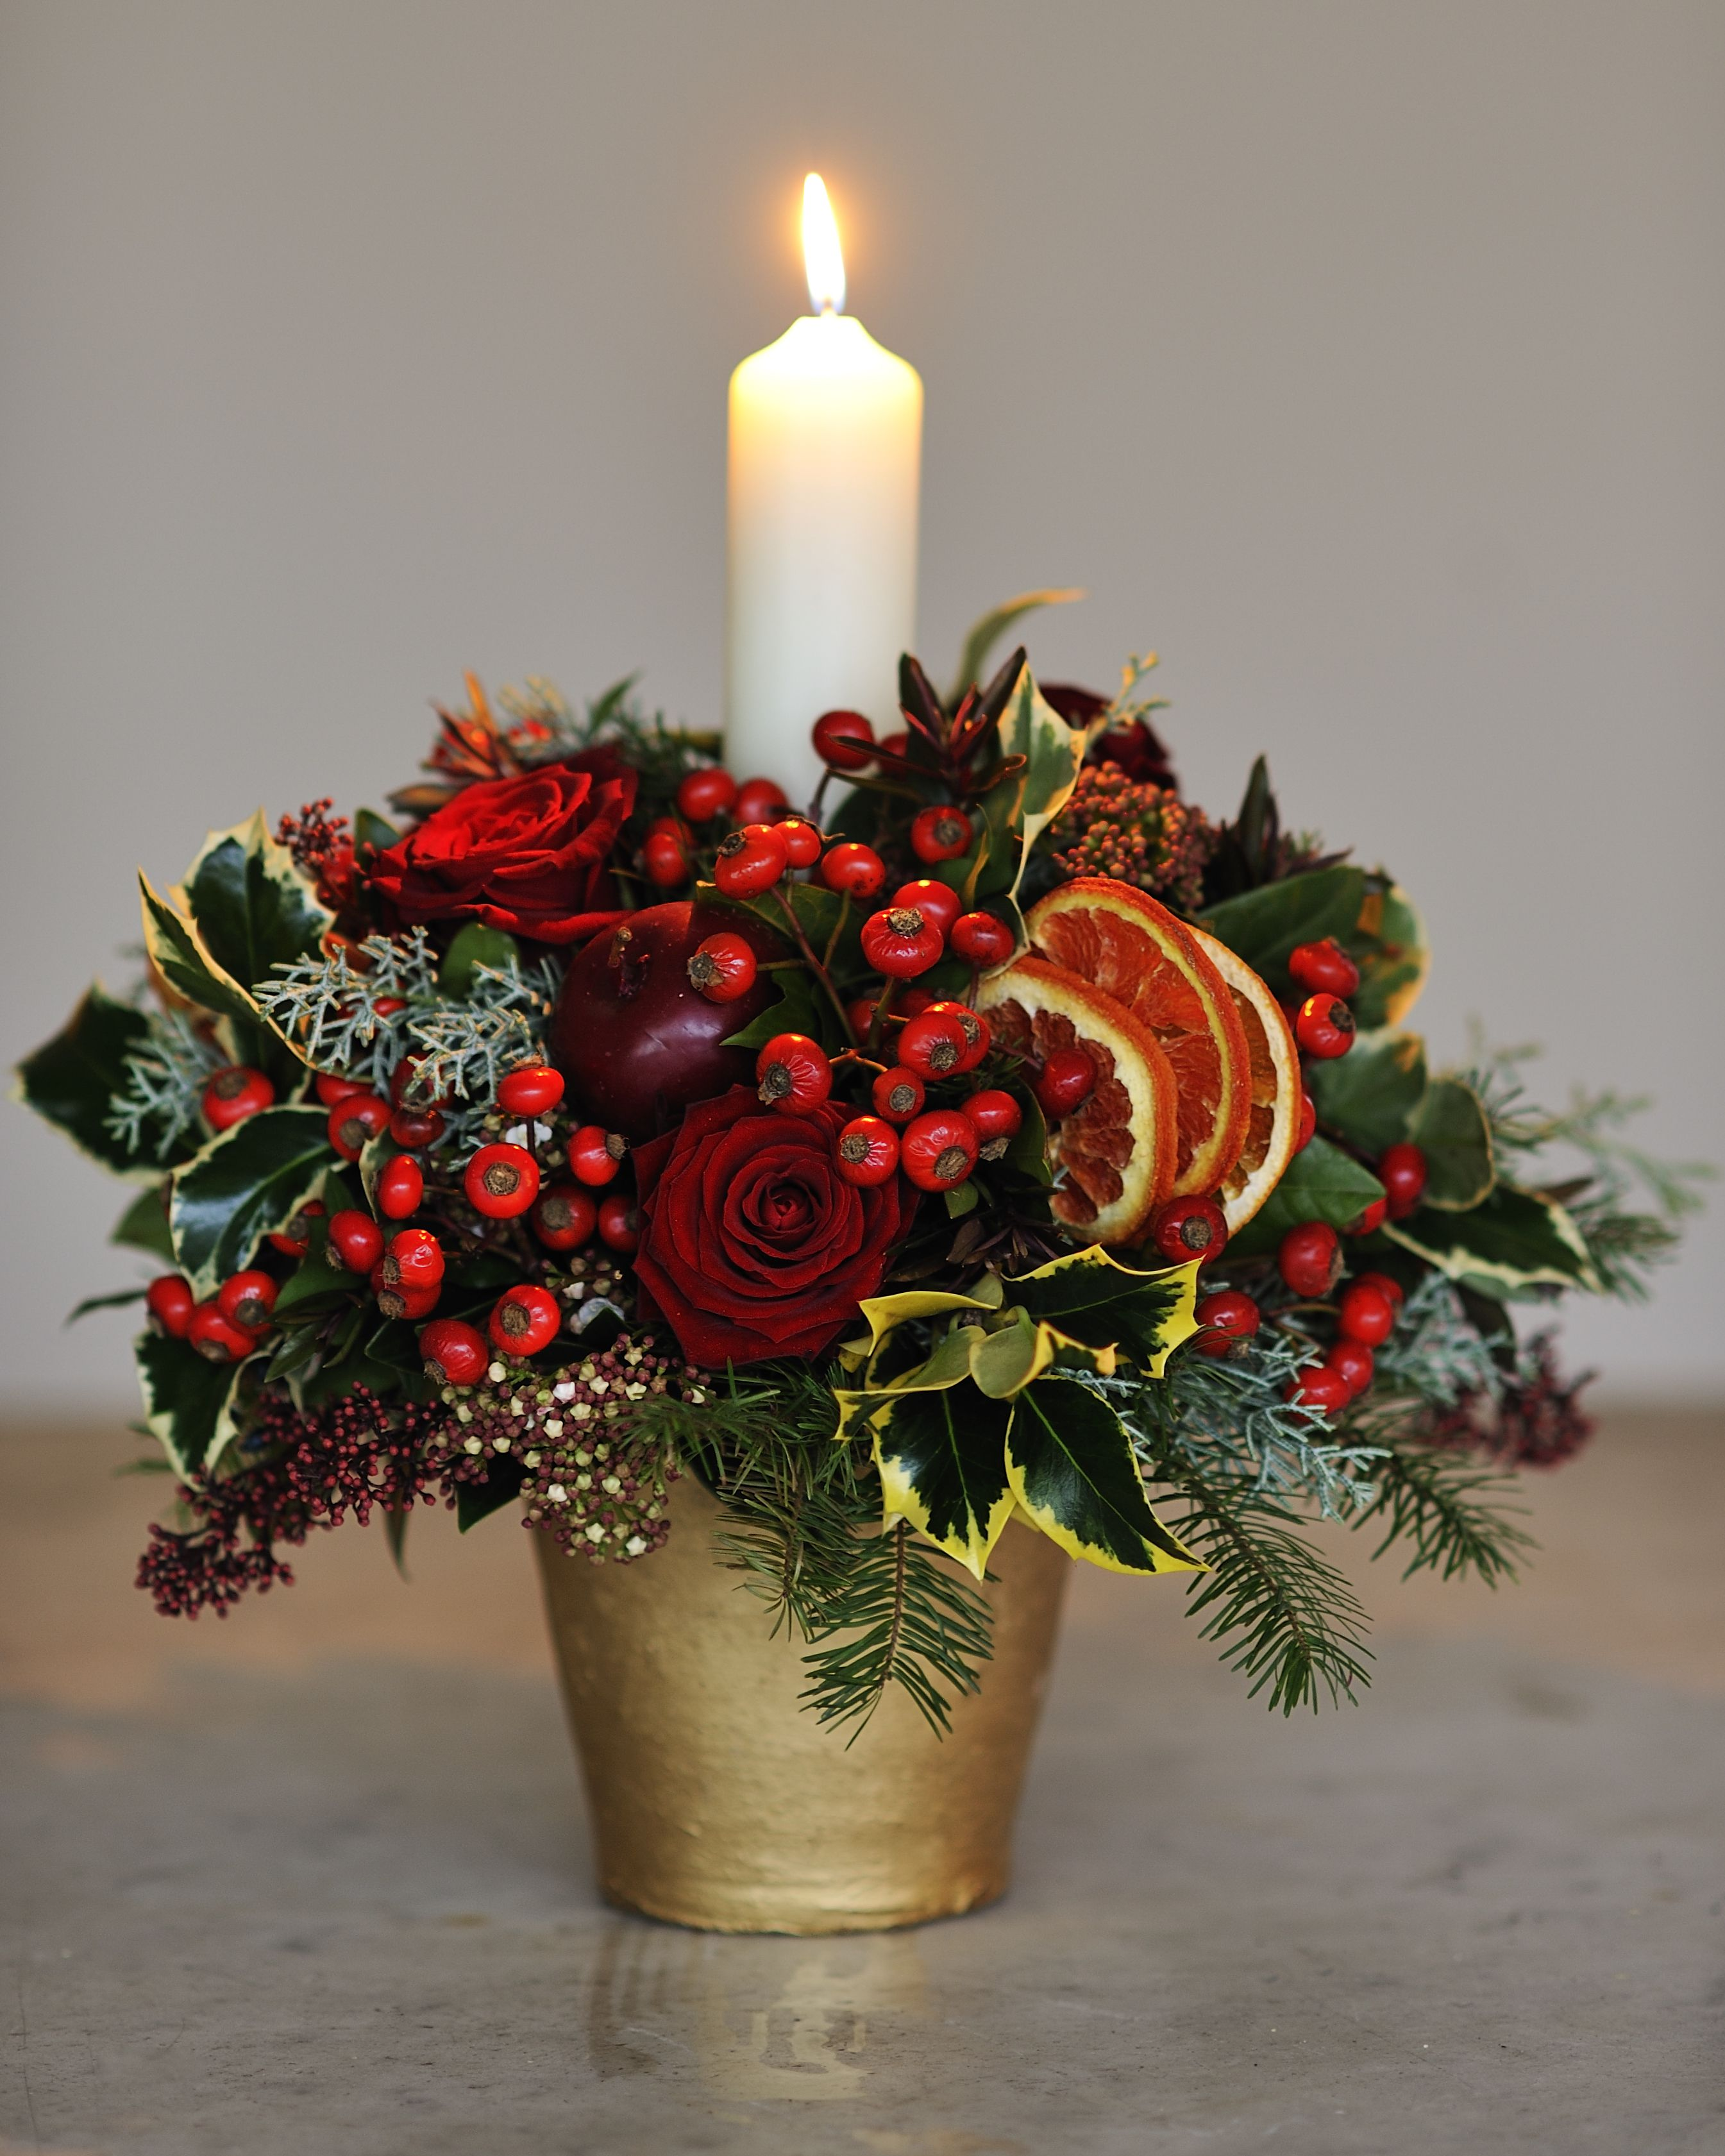 CLASSY CHRISTMAS CENTREPIECE WITH FLOWERS AND BERRIES